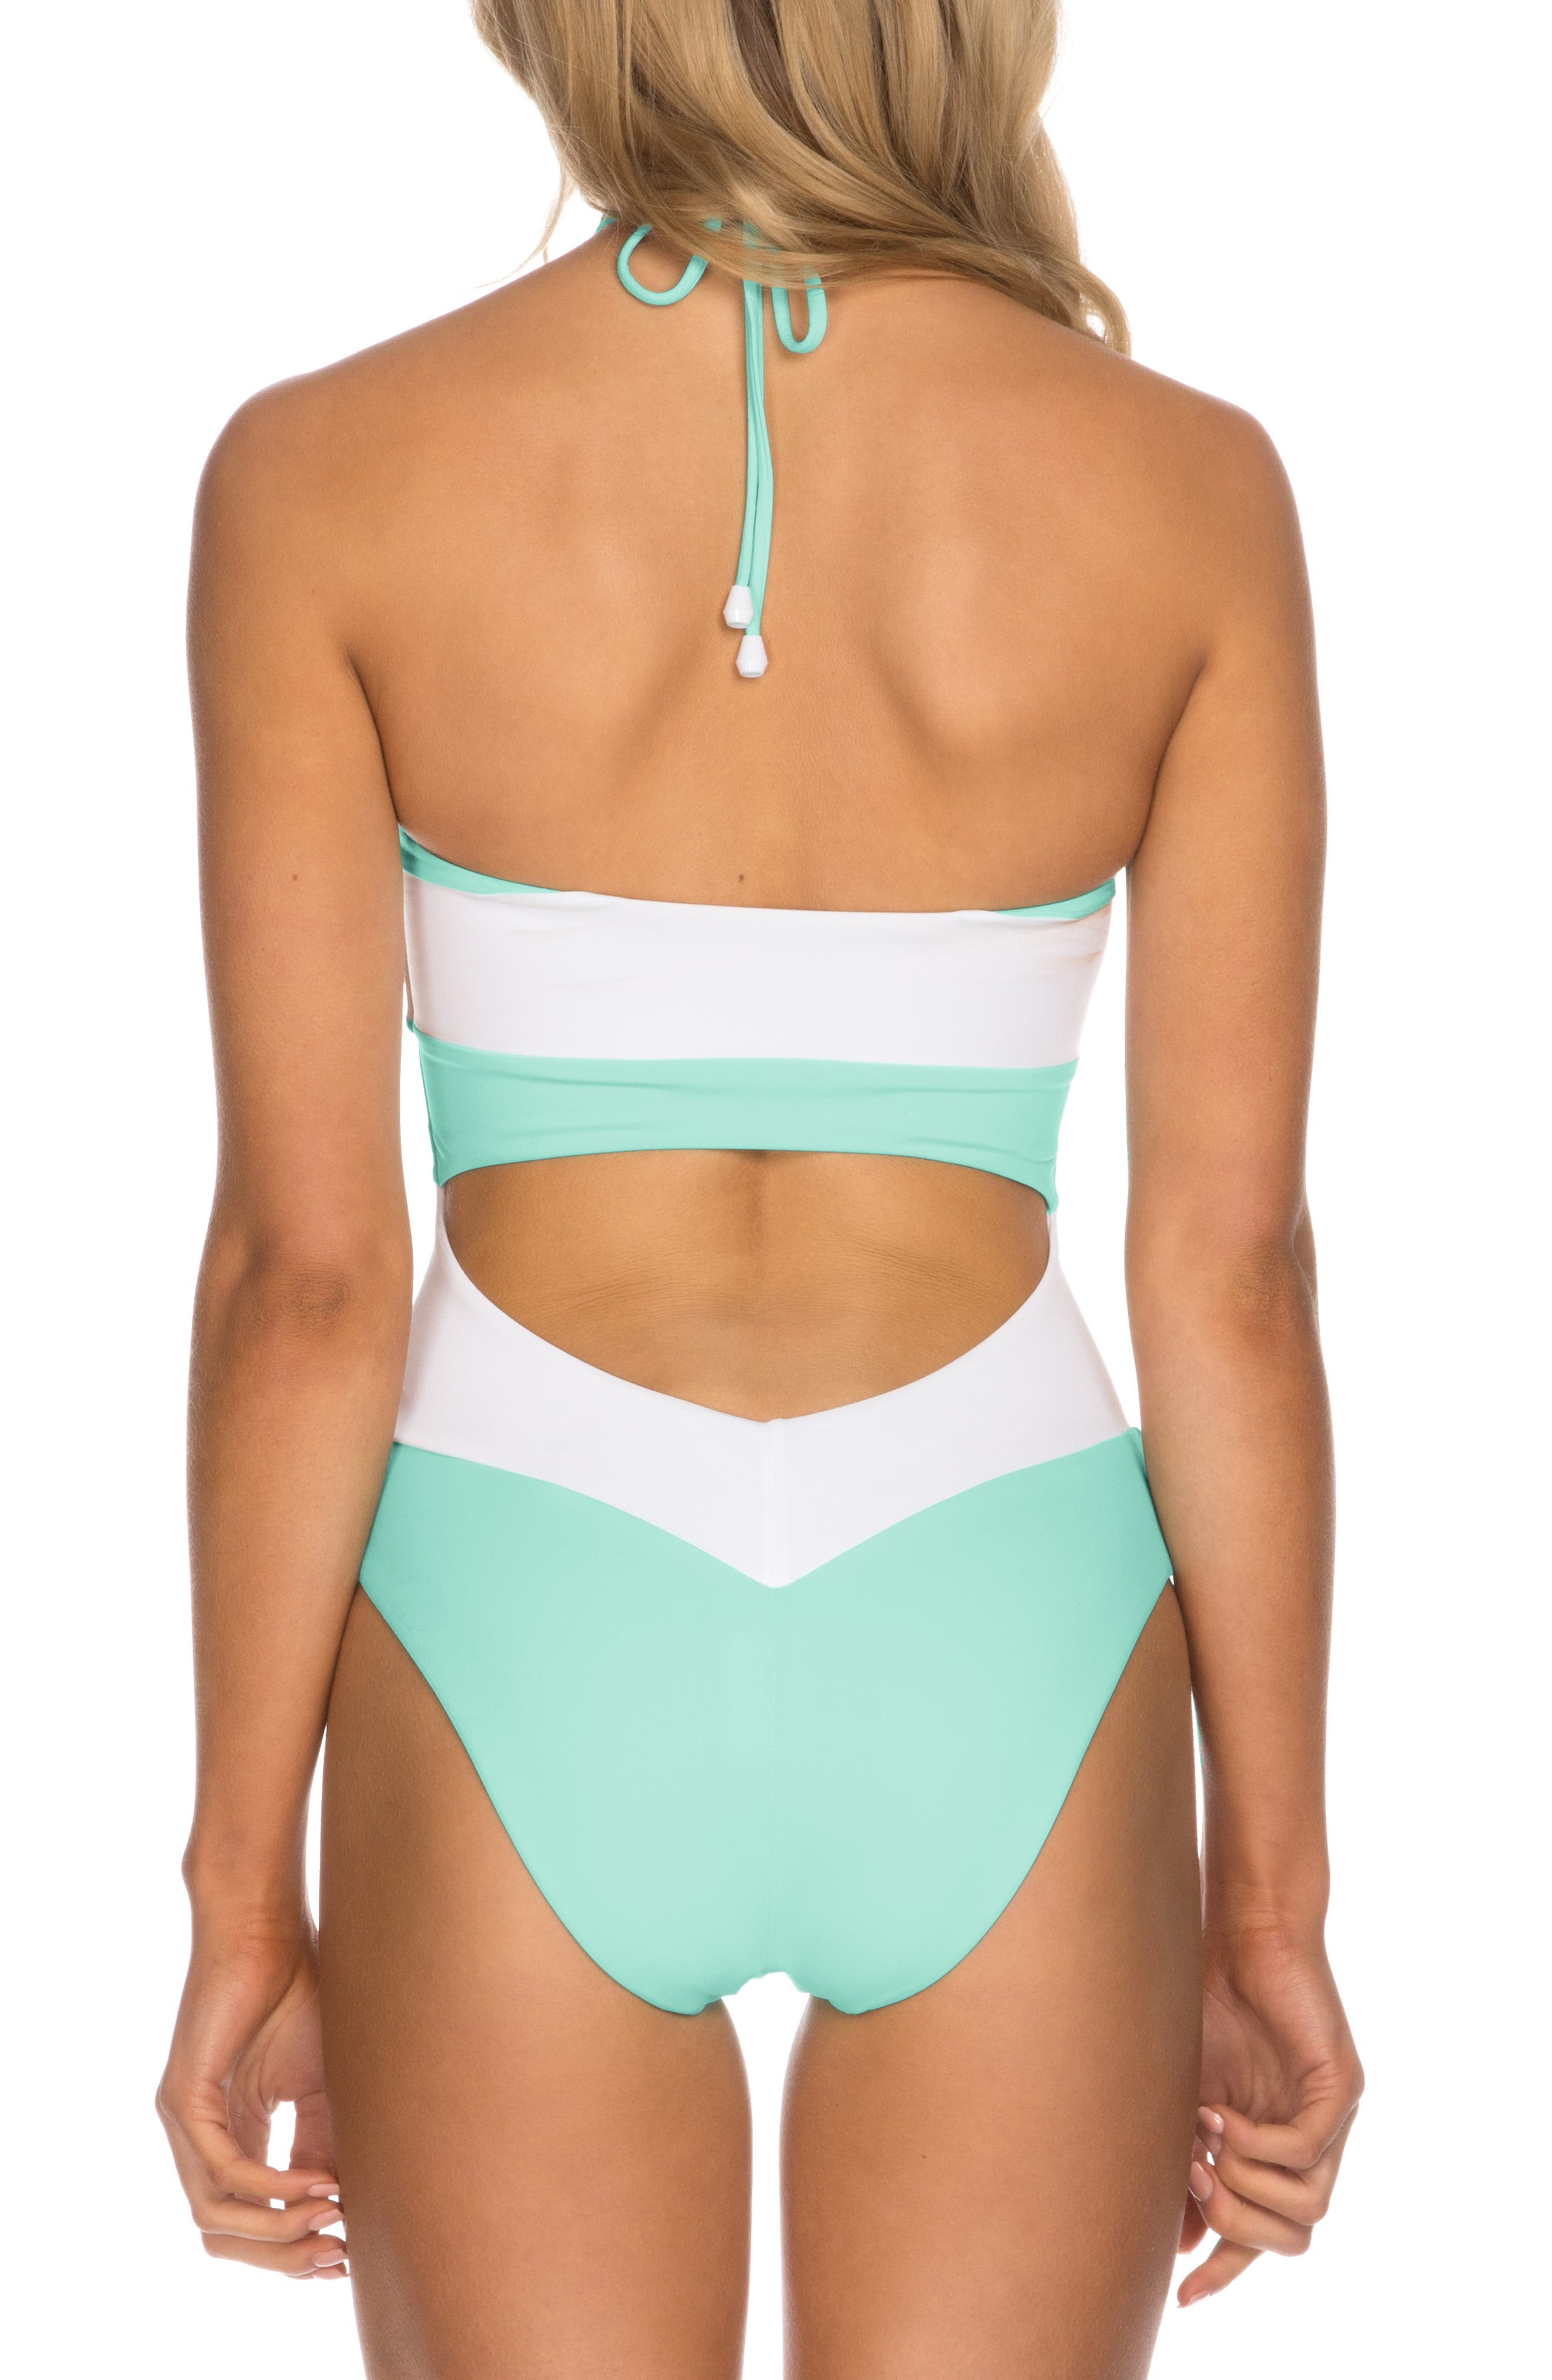 ISABELLA ROSE,                             Block Party One-Piece Swimsuit,                             Alternate thumbnail 2, color,                             BISCAYNE BLUE